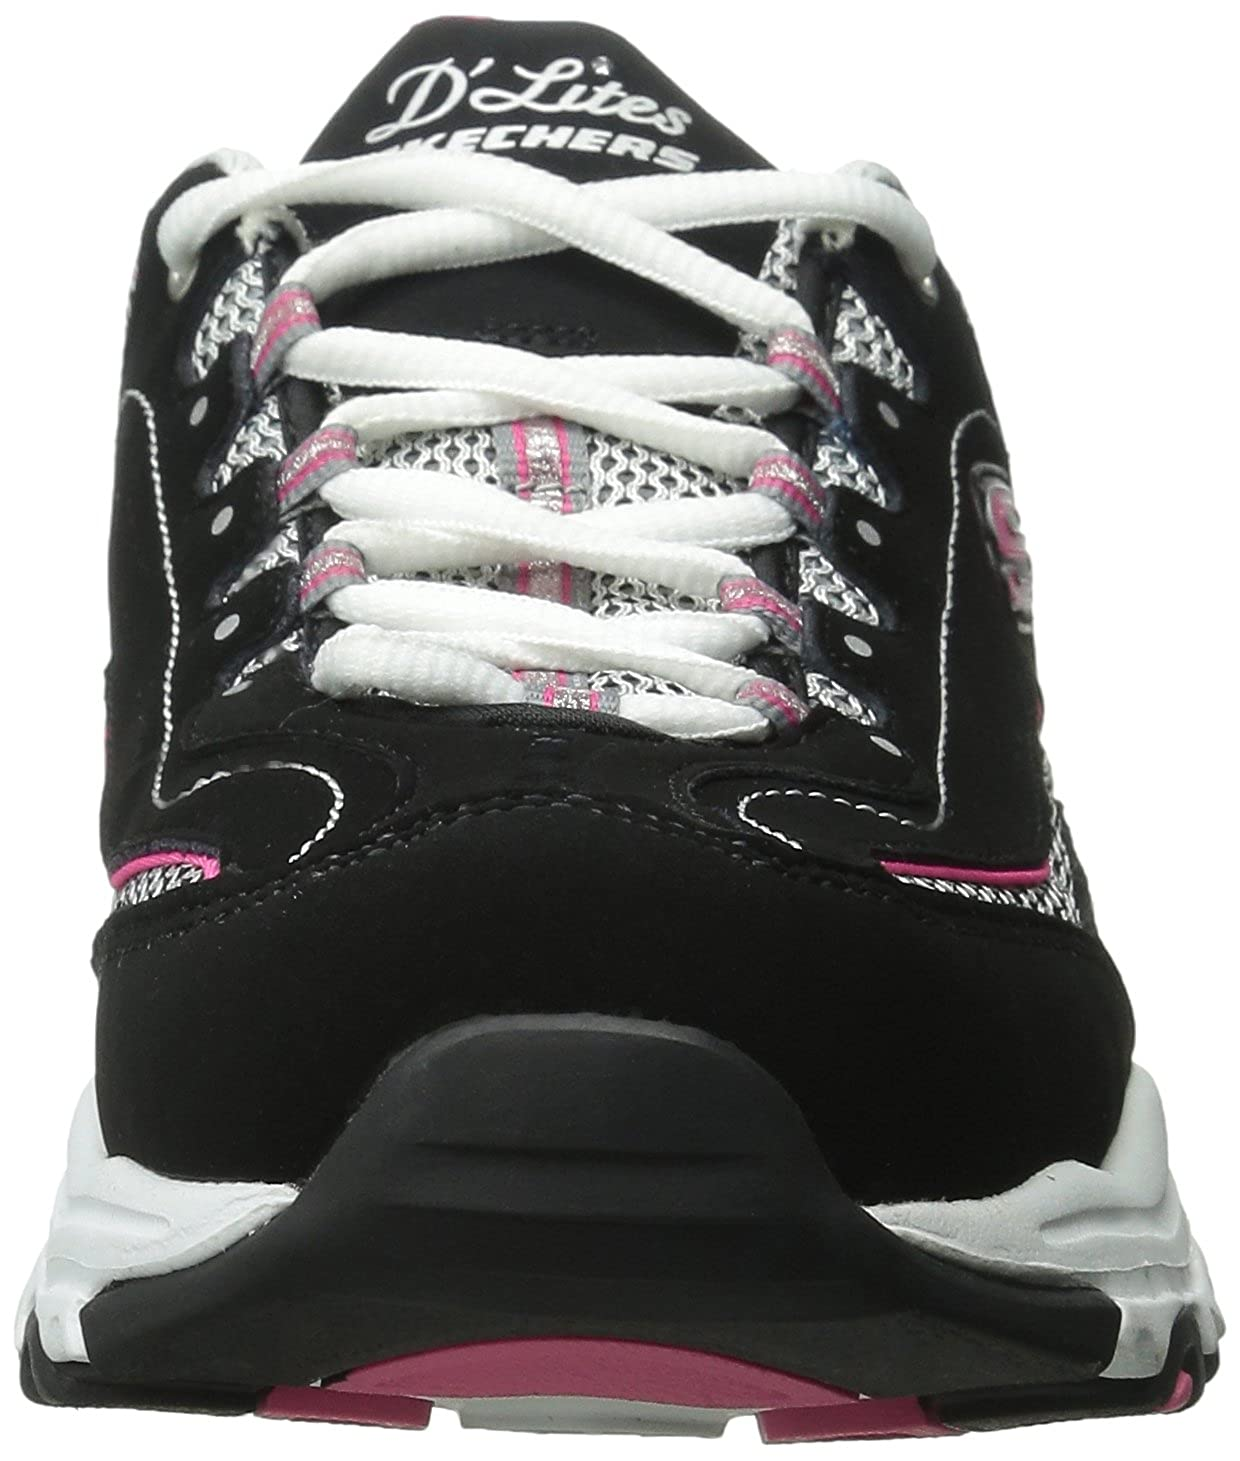 Skechers-D-039-Lites-Women-039-s-Casual-Lightweight-Fashion-Sneakers-Athletic-Shoes thumbnail 94